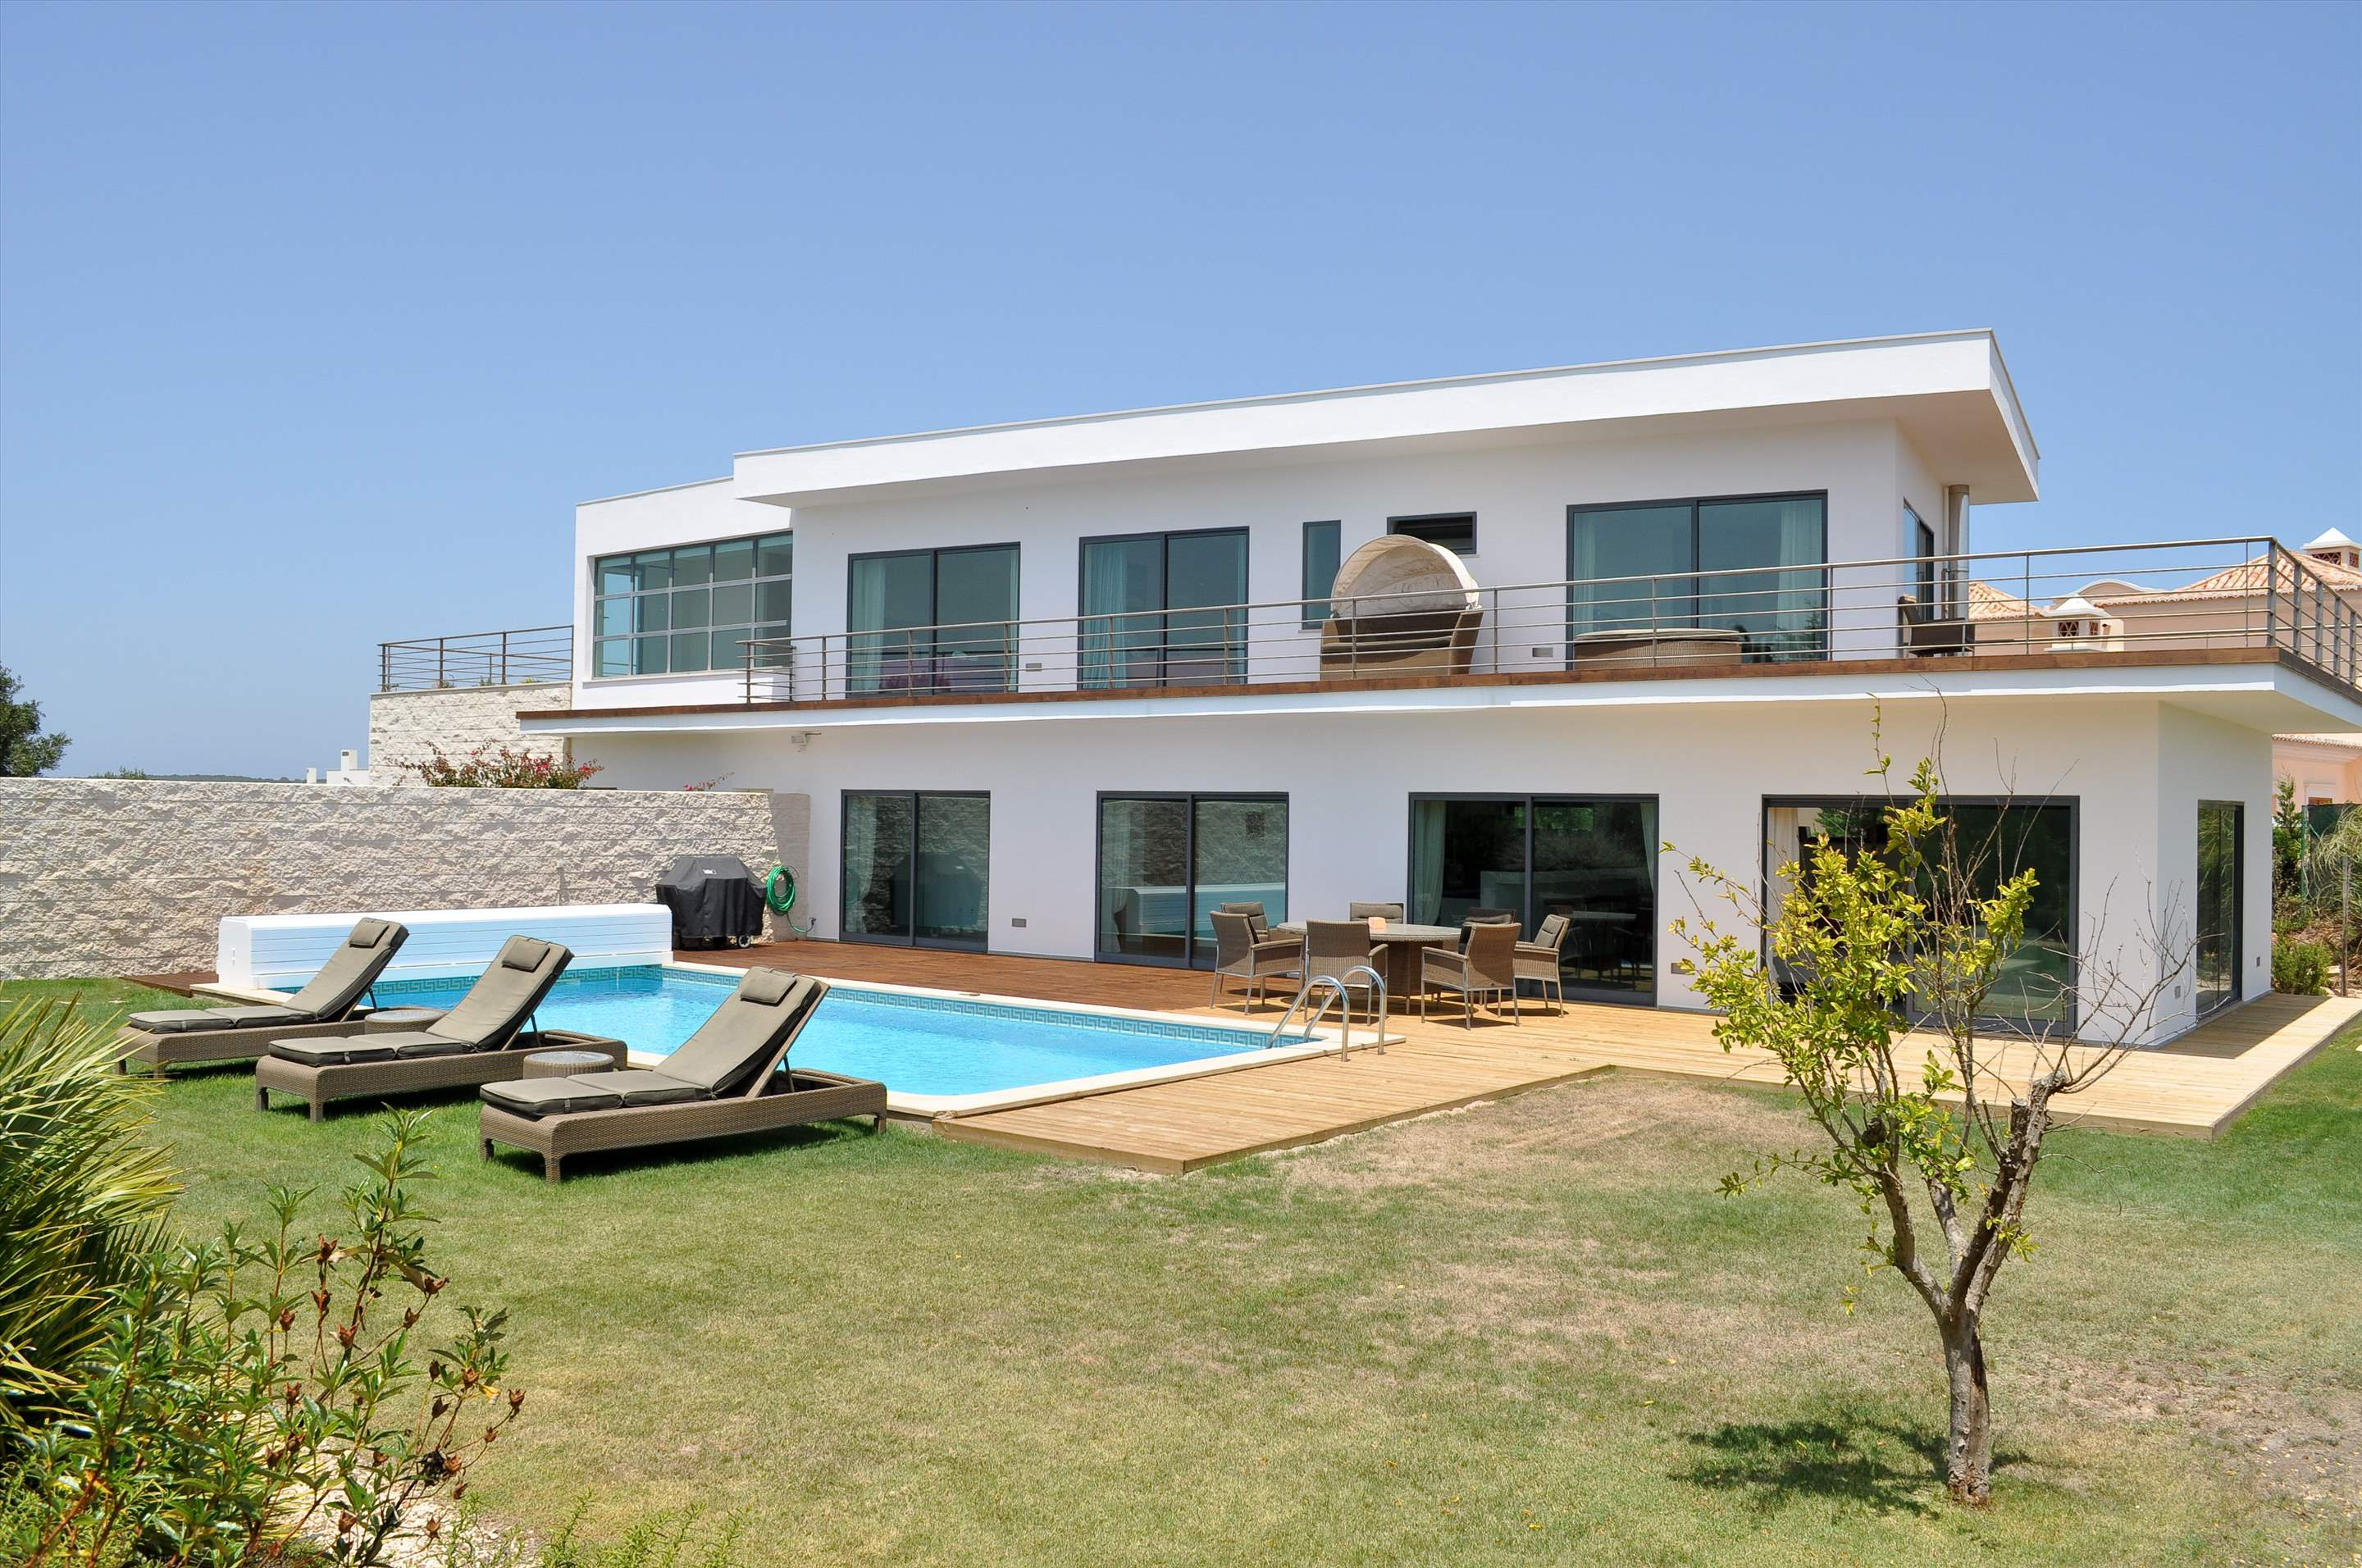 Martinhal Luxury Villa No.77, 5 bedroom villa in Martinhal Sagres, Algarve